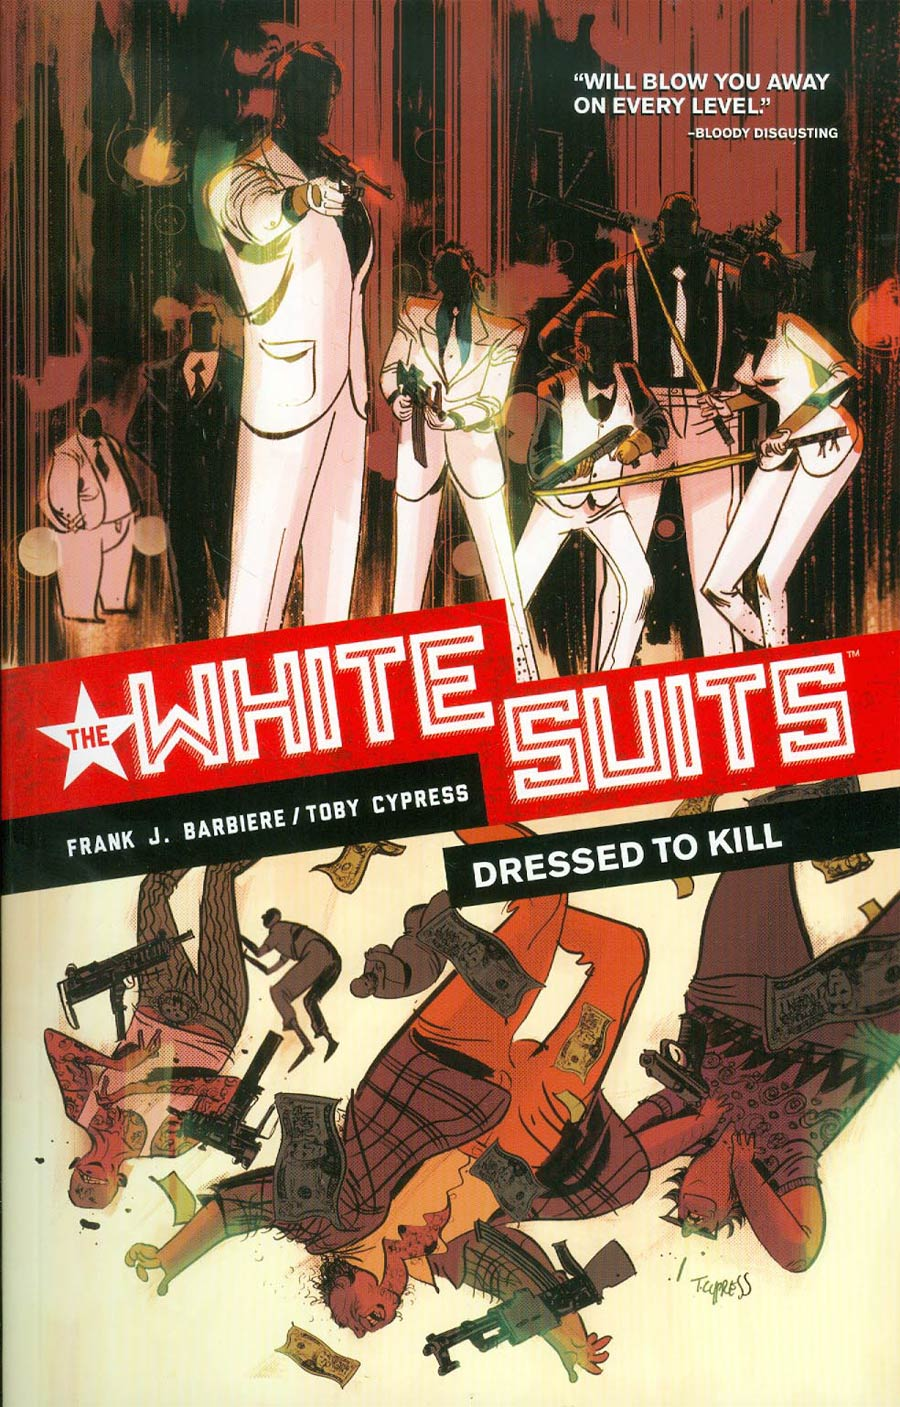 White Suits Vol 1 Dressed To Kill TP